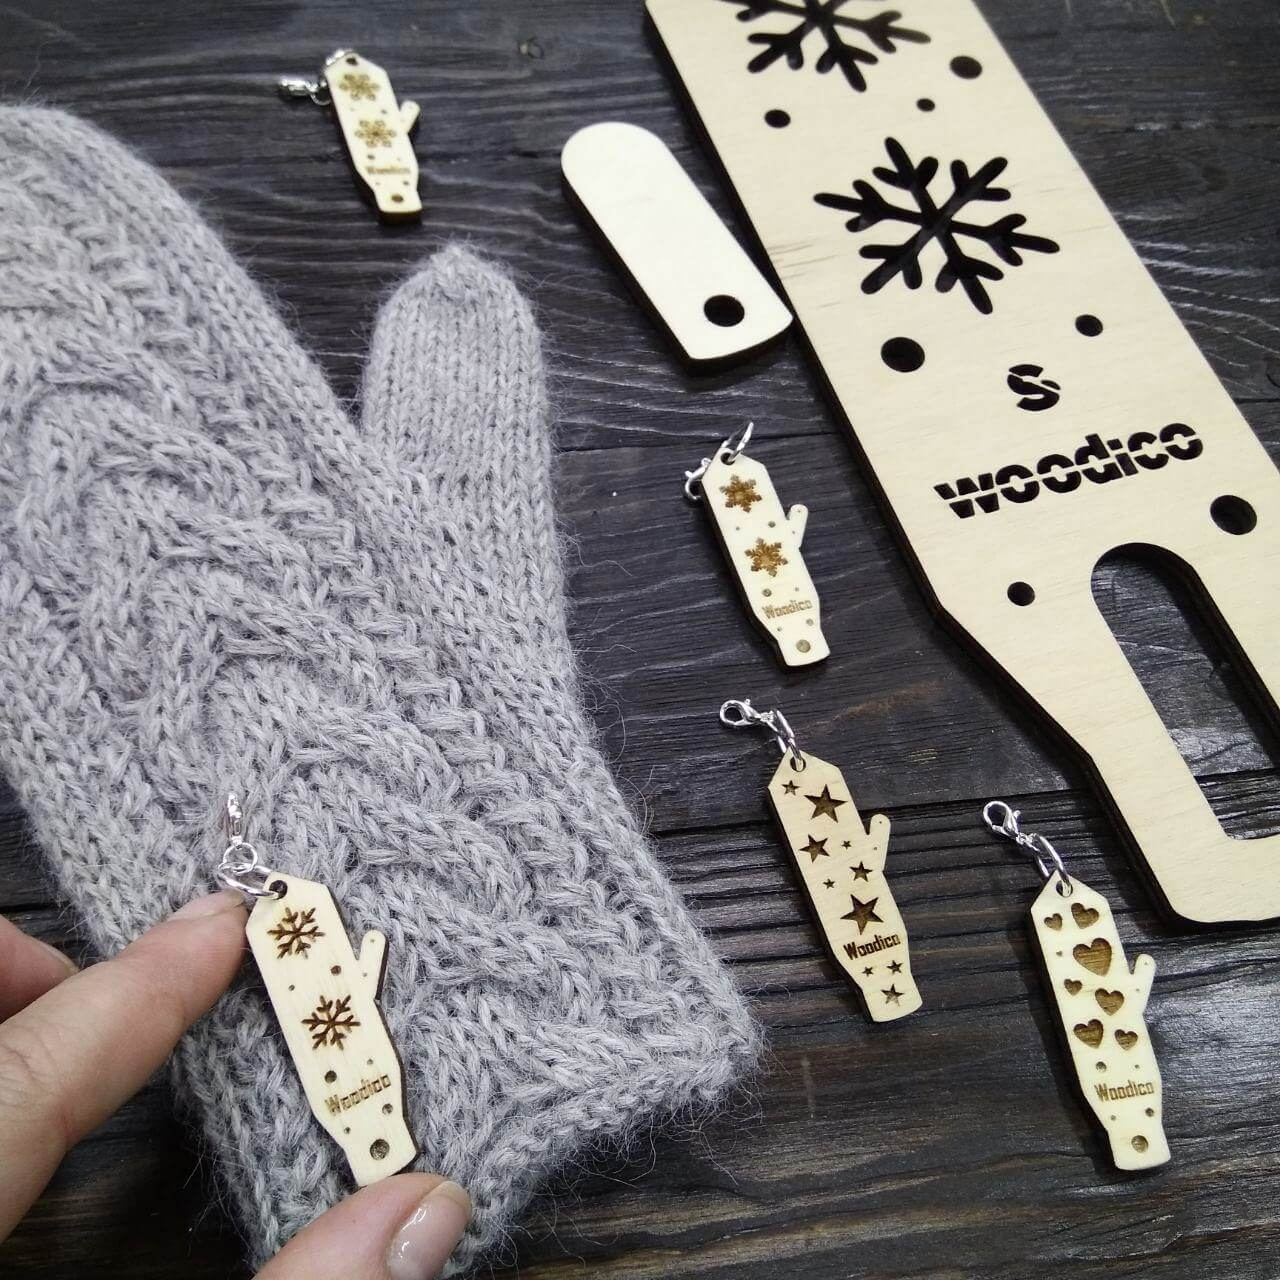 woodico.pro stich markers for knitting mini nordic mitten blockers 4 - A completely new series of products - wooden stich markers for knitiing in the form of our blockers